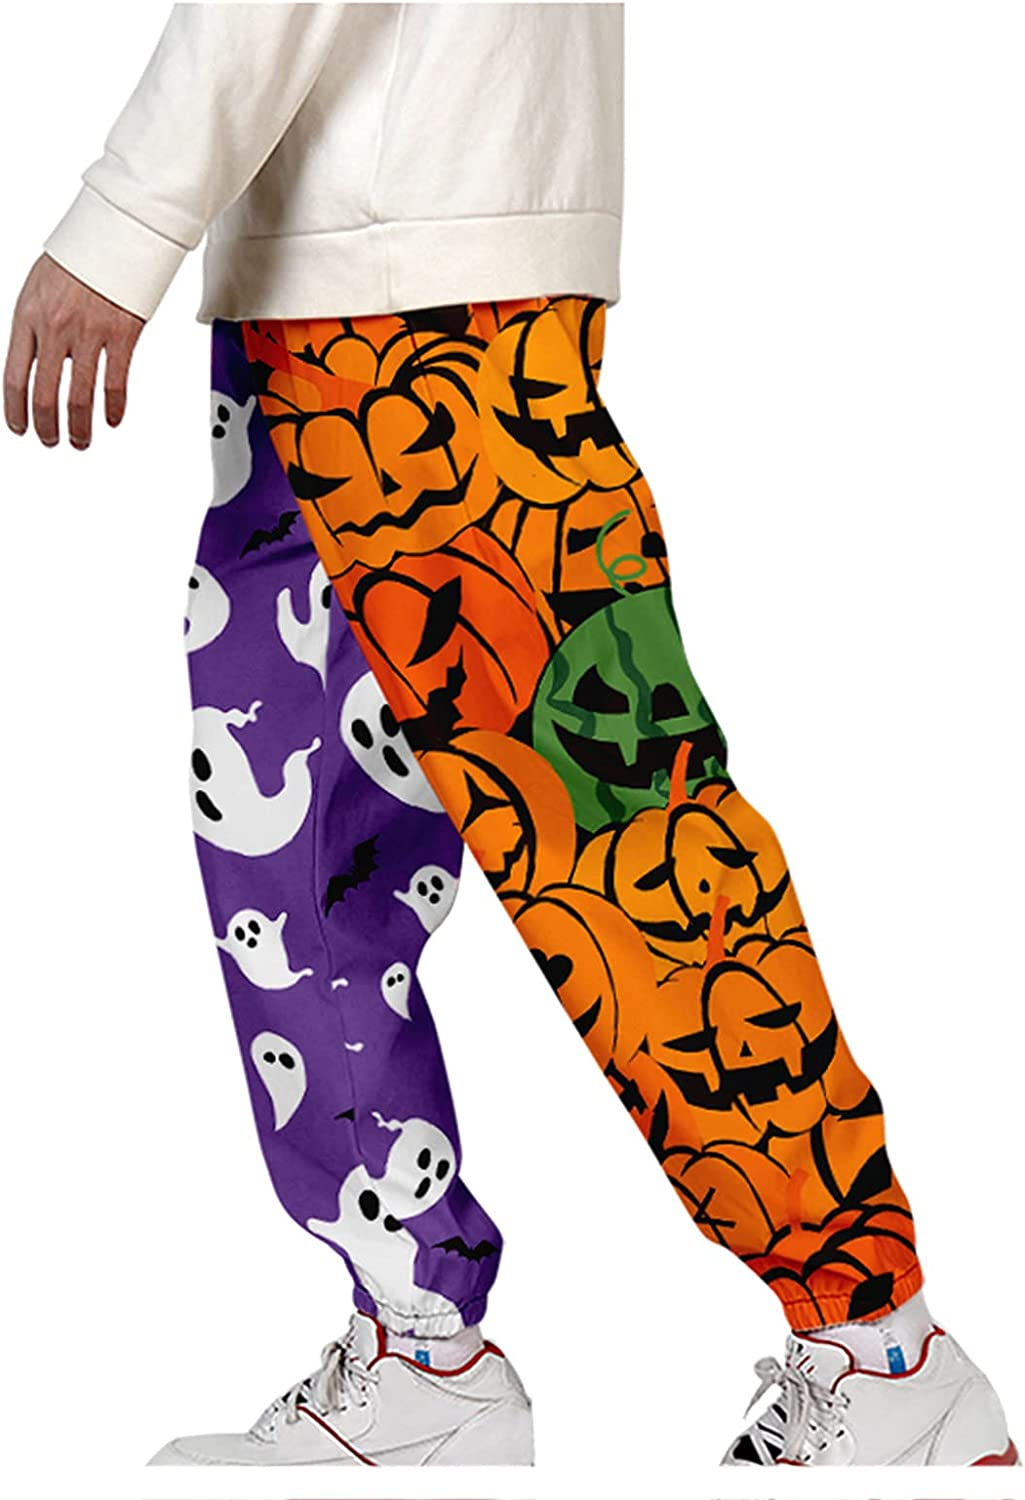 Pants for Men's Harem Pants Halloween Funny Printed Hippie Overalls Trousers Baggy Plus Size Casual Cargo Pants